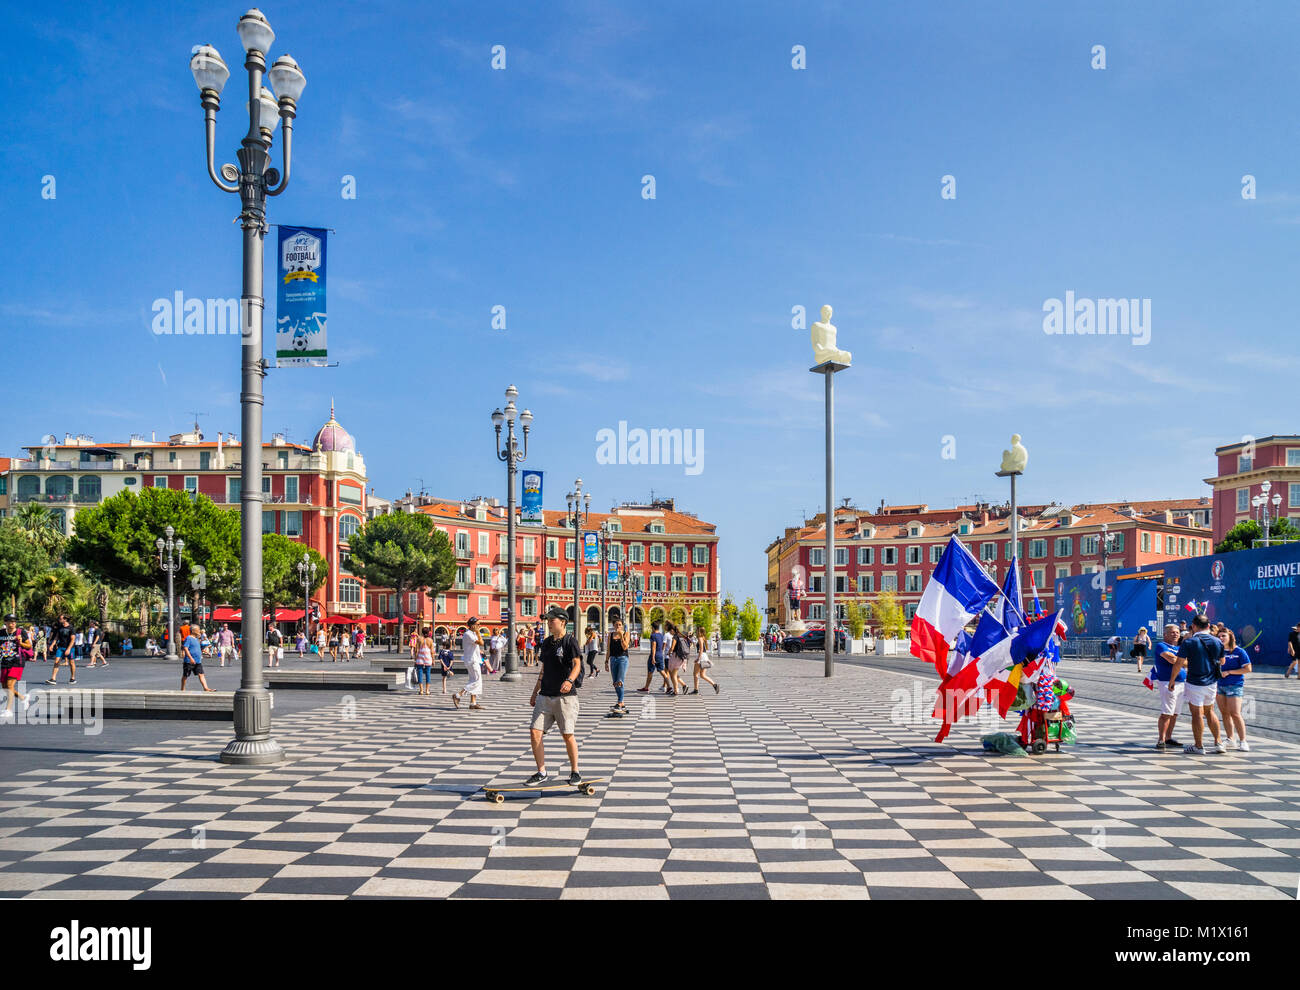 France, Alpes-Maritimes department, Côte d'Azur, Nice, view of Place Masséna, the embodiment of a - Stock Image